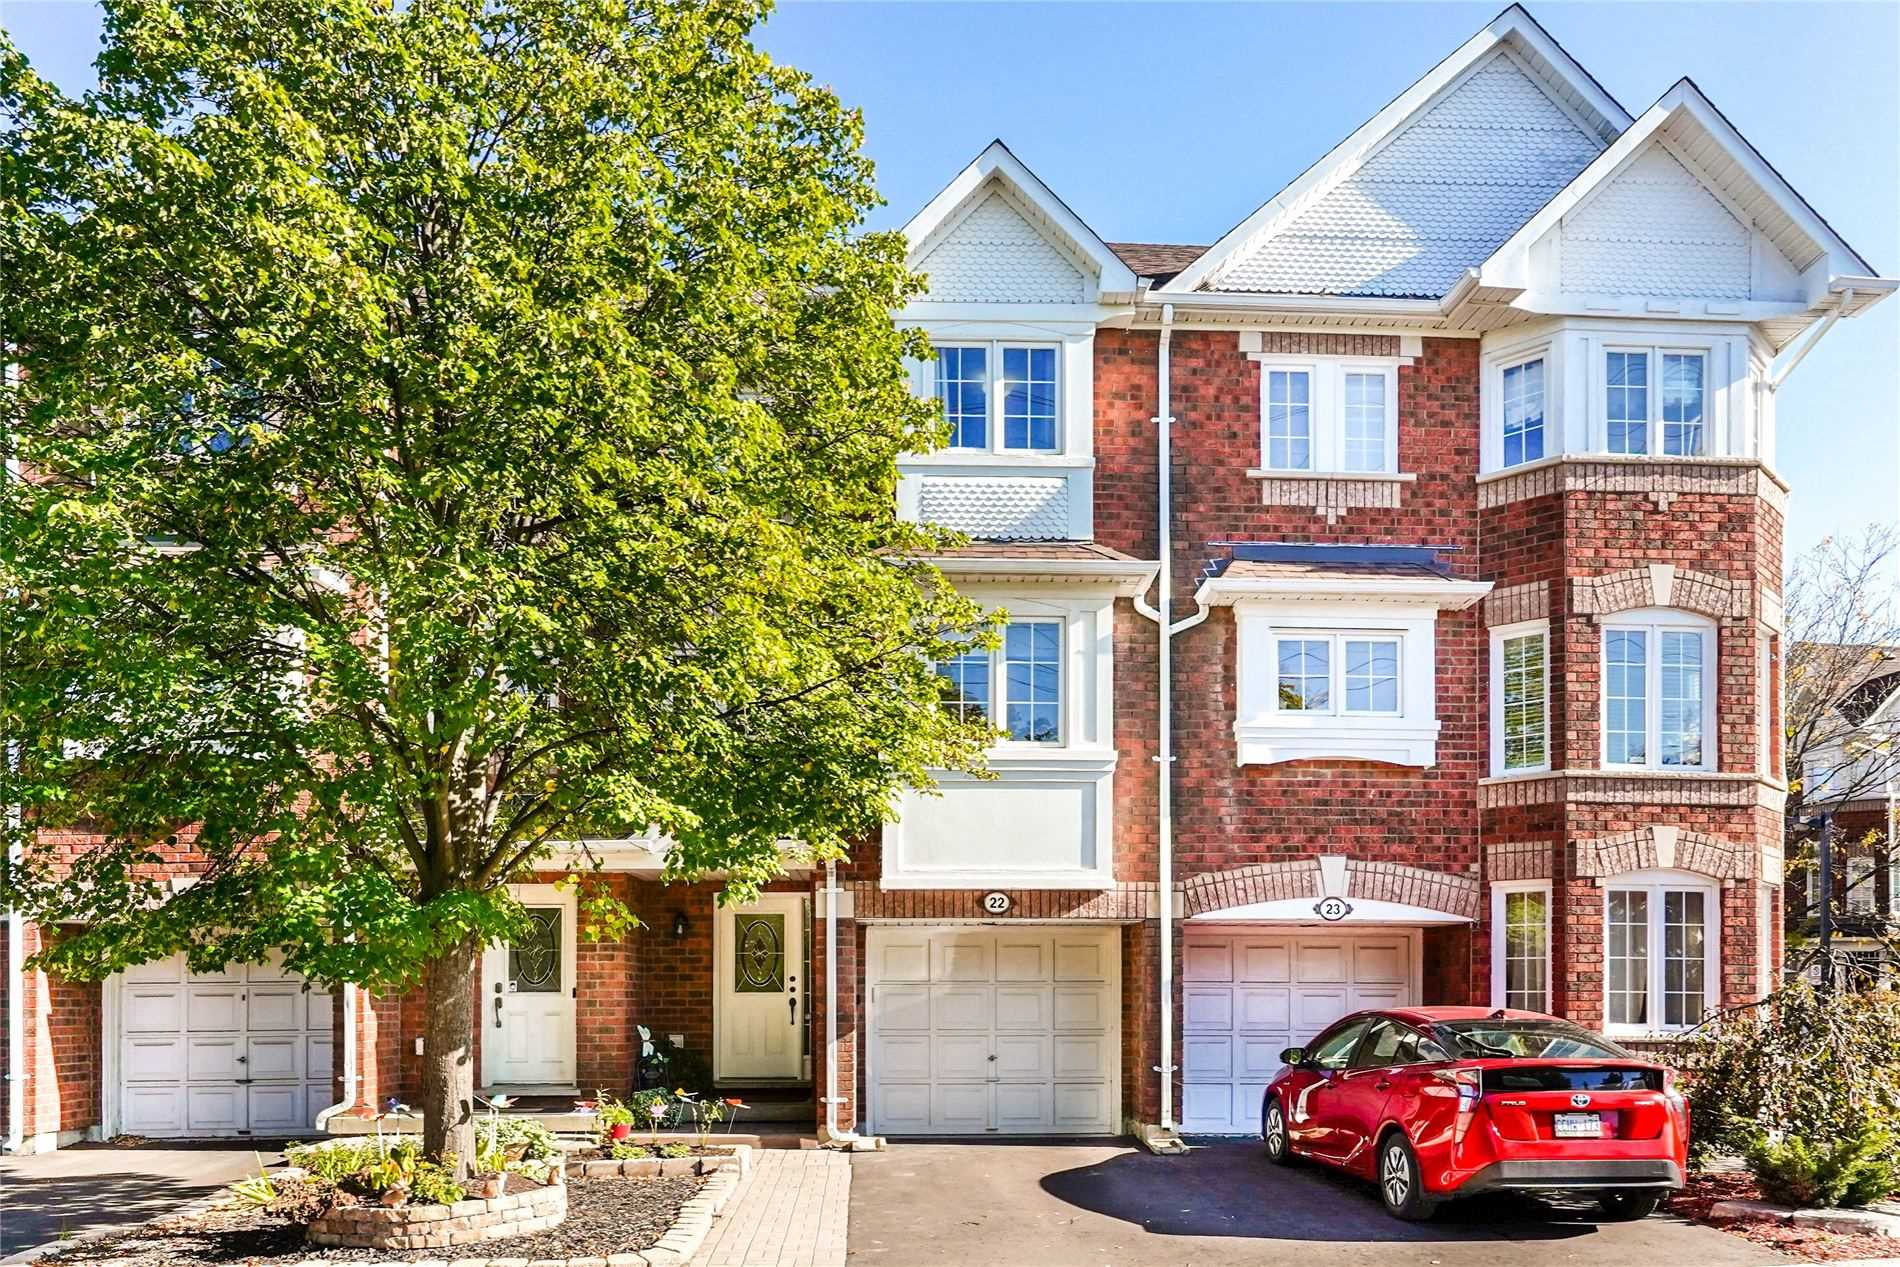 For Sale: 22 - 6060 Snowy Owl Crescent, Mississauga, ON | 3 Bed, 3 Bath Townhouse for $689900.00. See 31 photos!